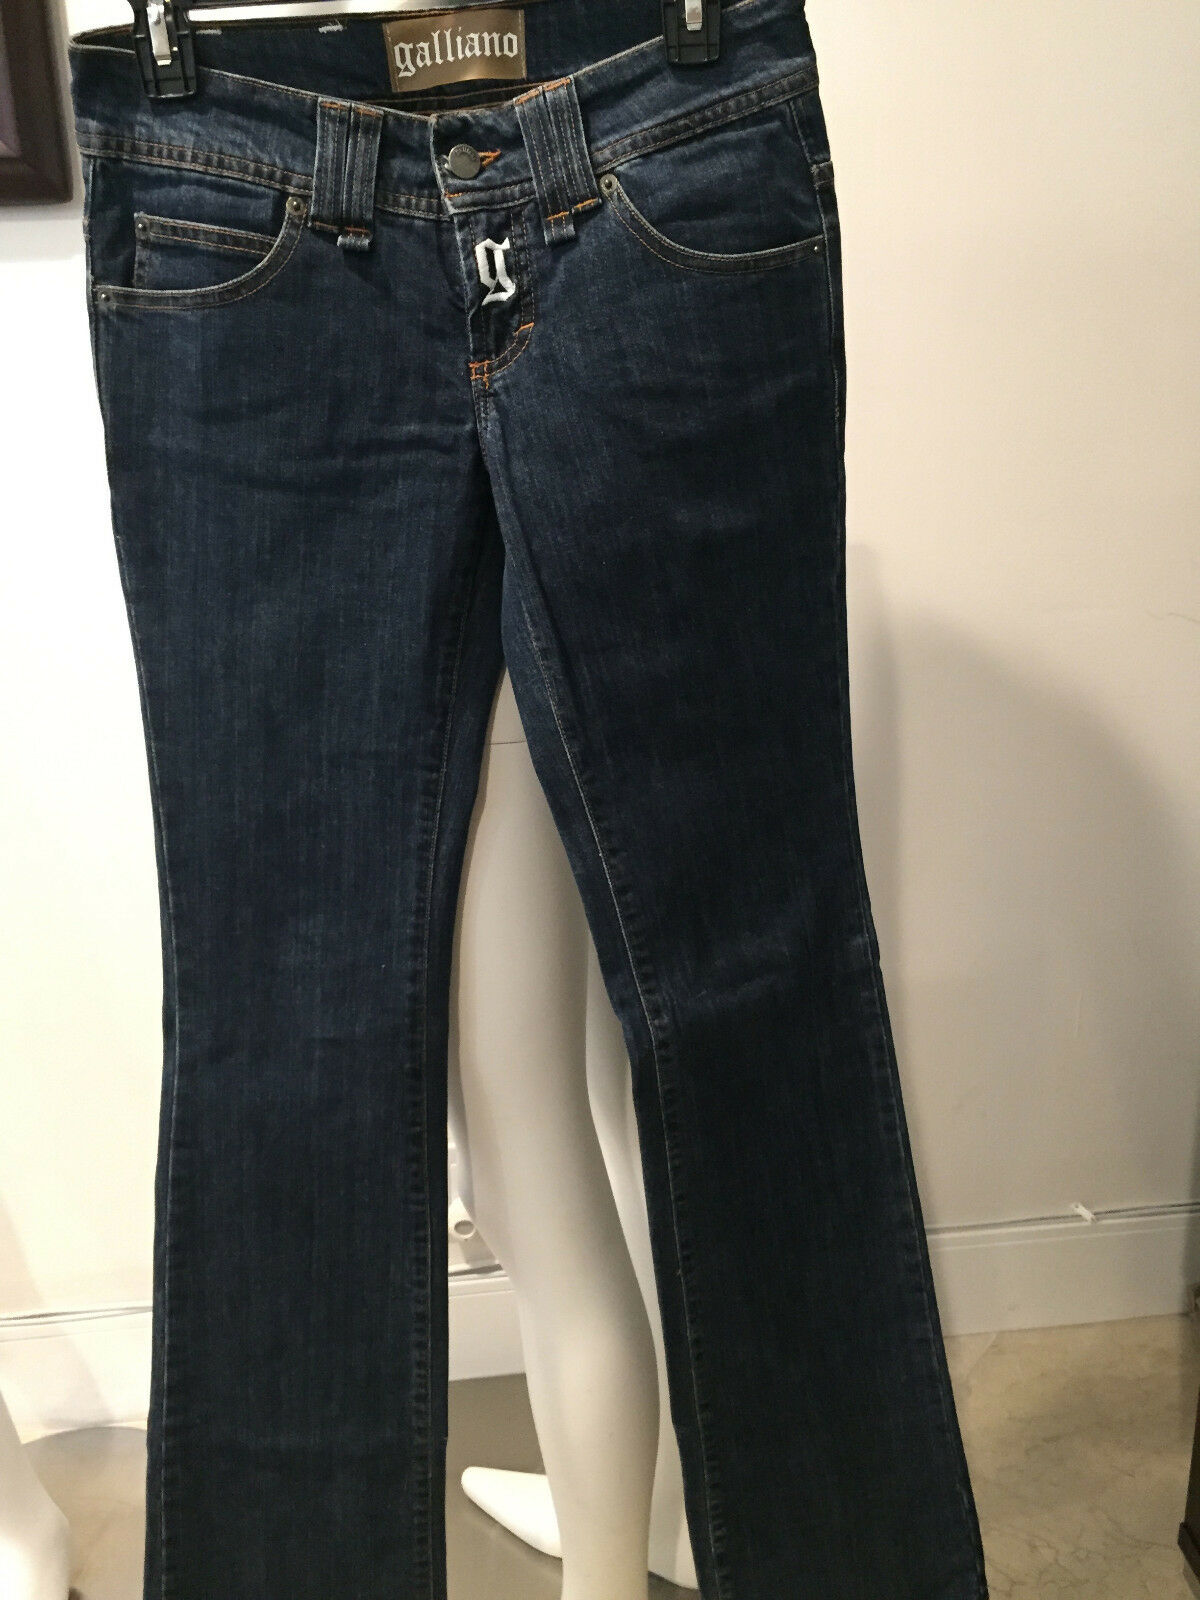 GALLIANO  ITALY WOMEN'S SKINNY JEANS SIZE  27 41    MH